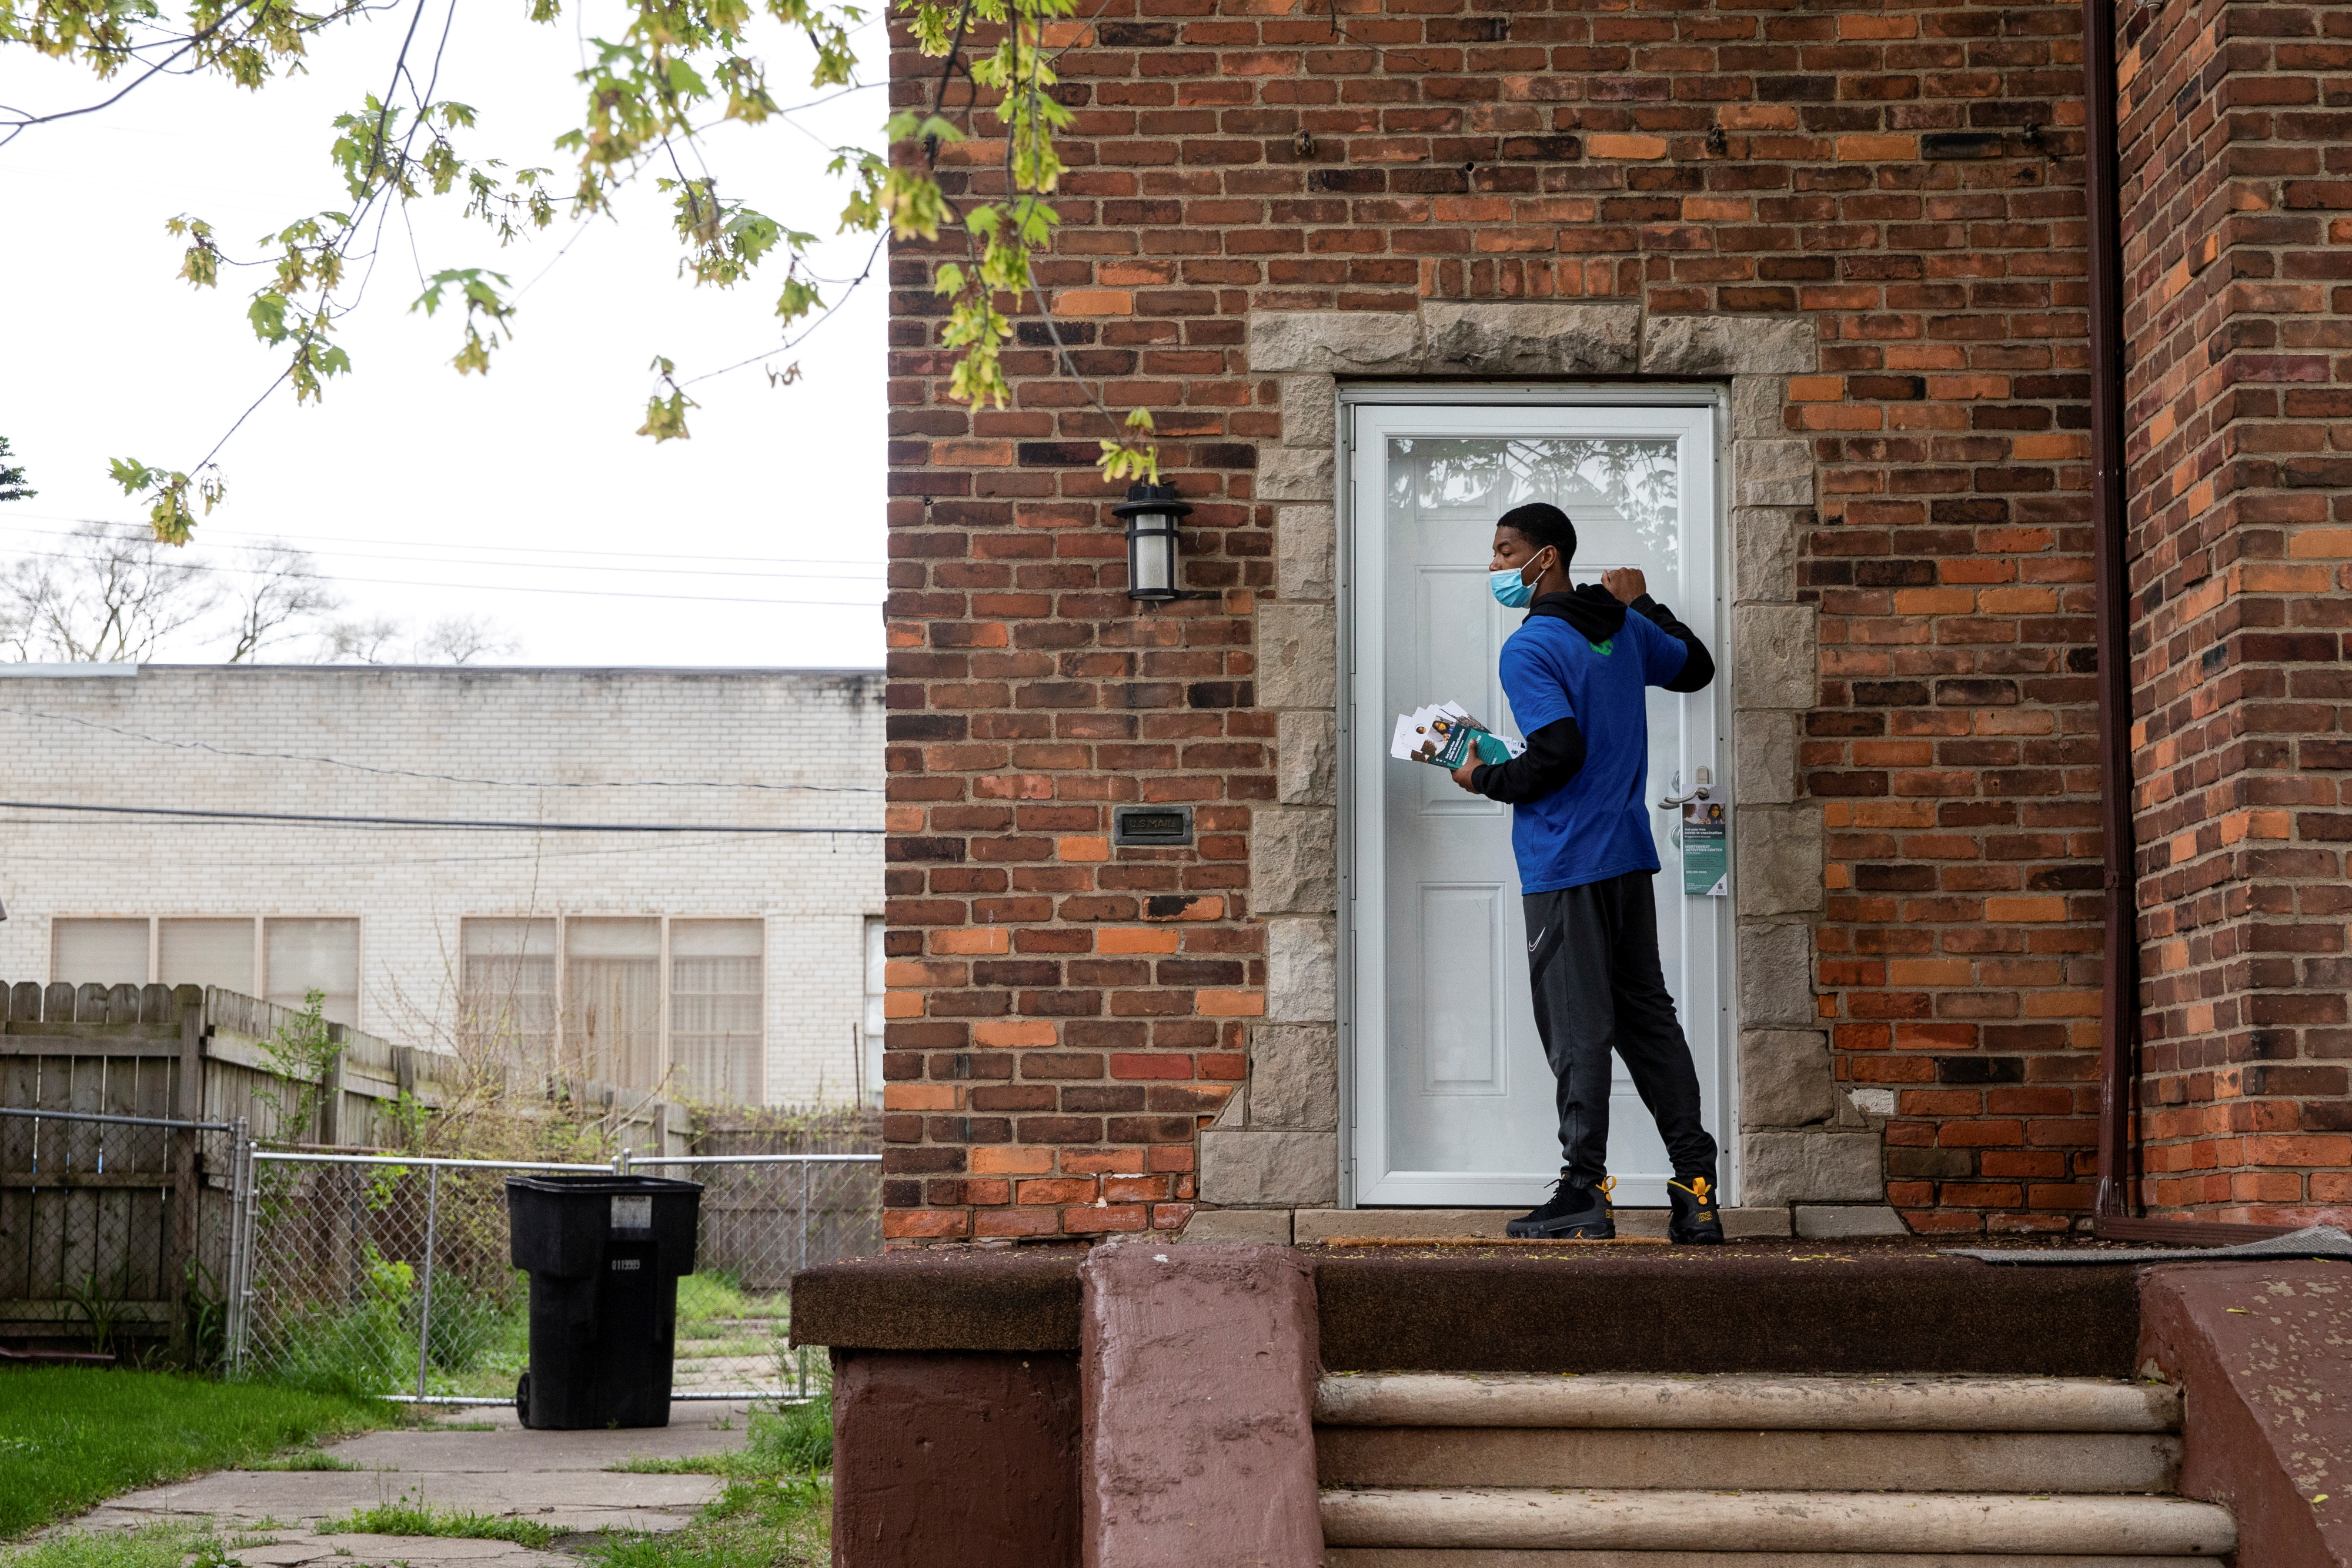 Sirgregory Allen from Better Men Outreach knocks on doors during a door-knock campaign to provide information about where people can get their vaccinations and answer questions related to hesitancy around the coronavirus disease (COVID-19) vaccine in Detroit, Michigan, U.S., May 4, 2021. REUTERS/Emily Elconin     TPX IMAGES OF THE DAY - RC2Z8N93JI0C